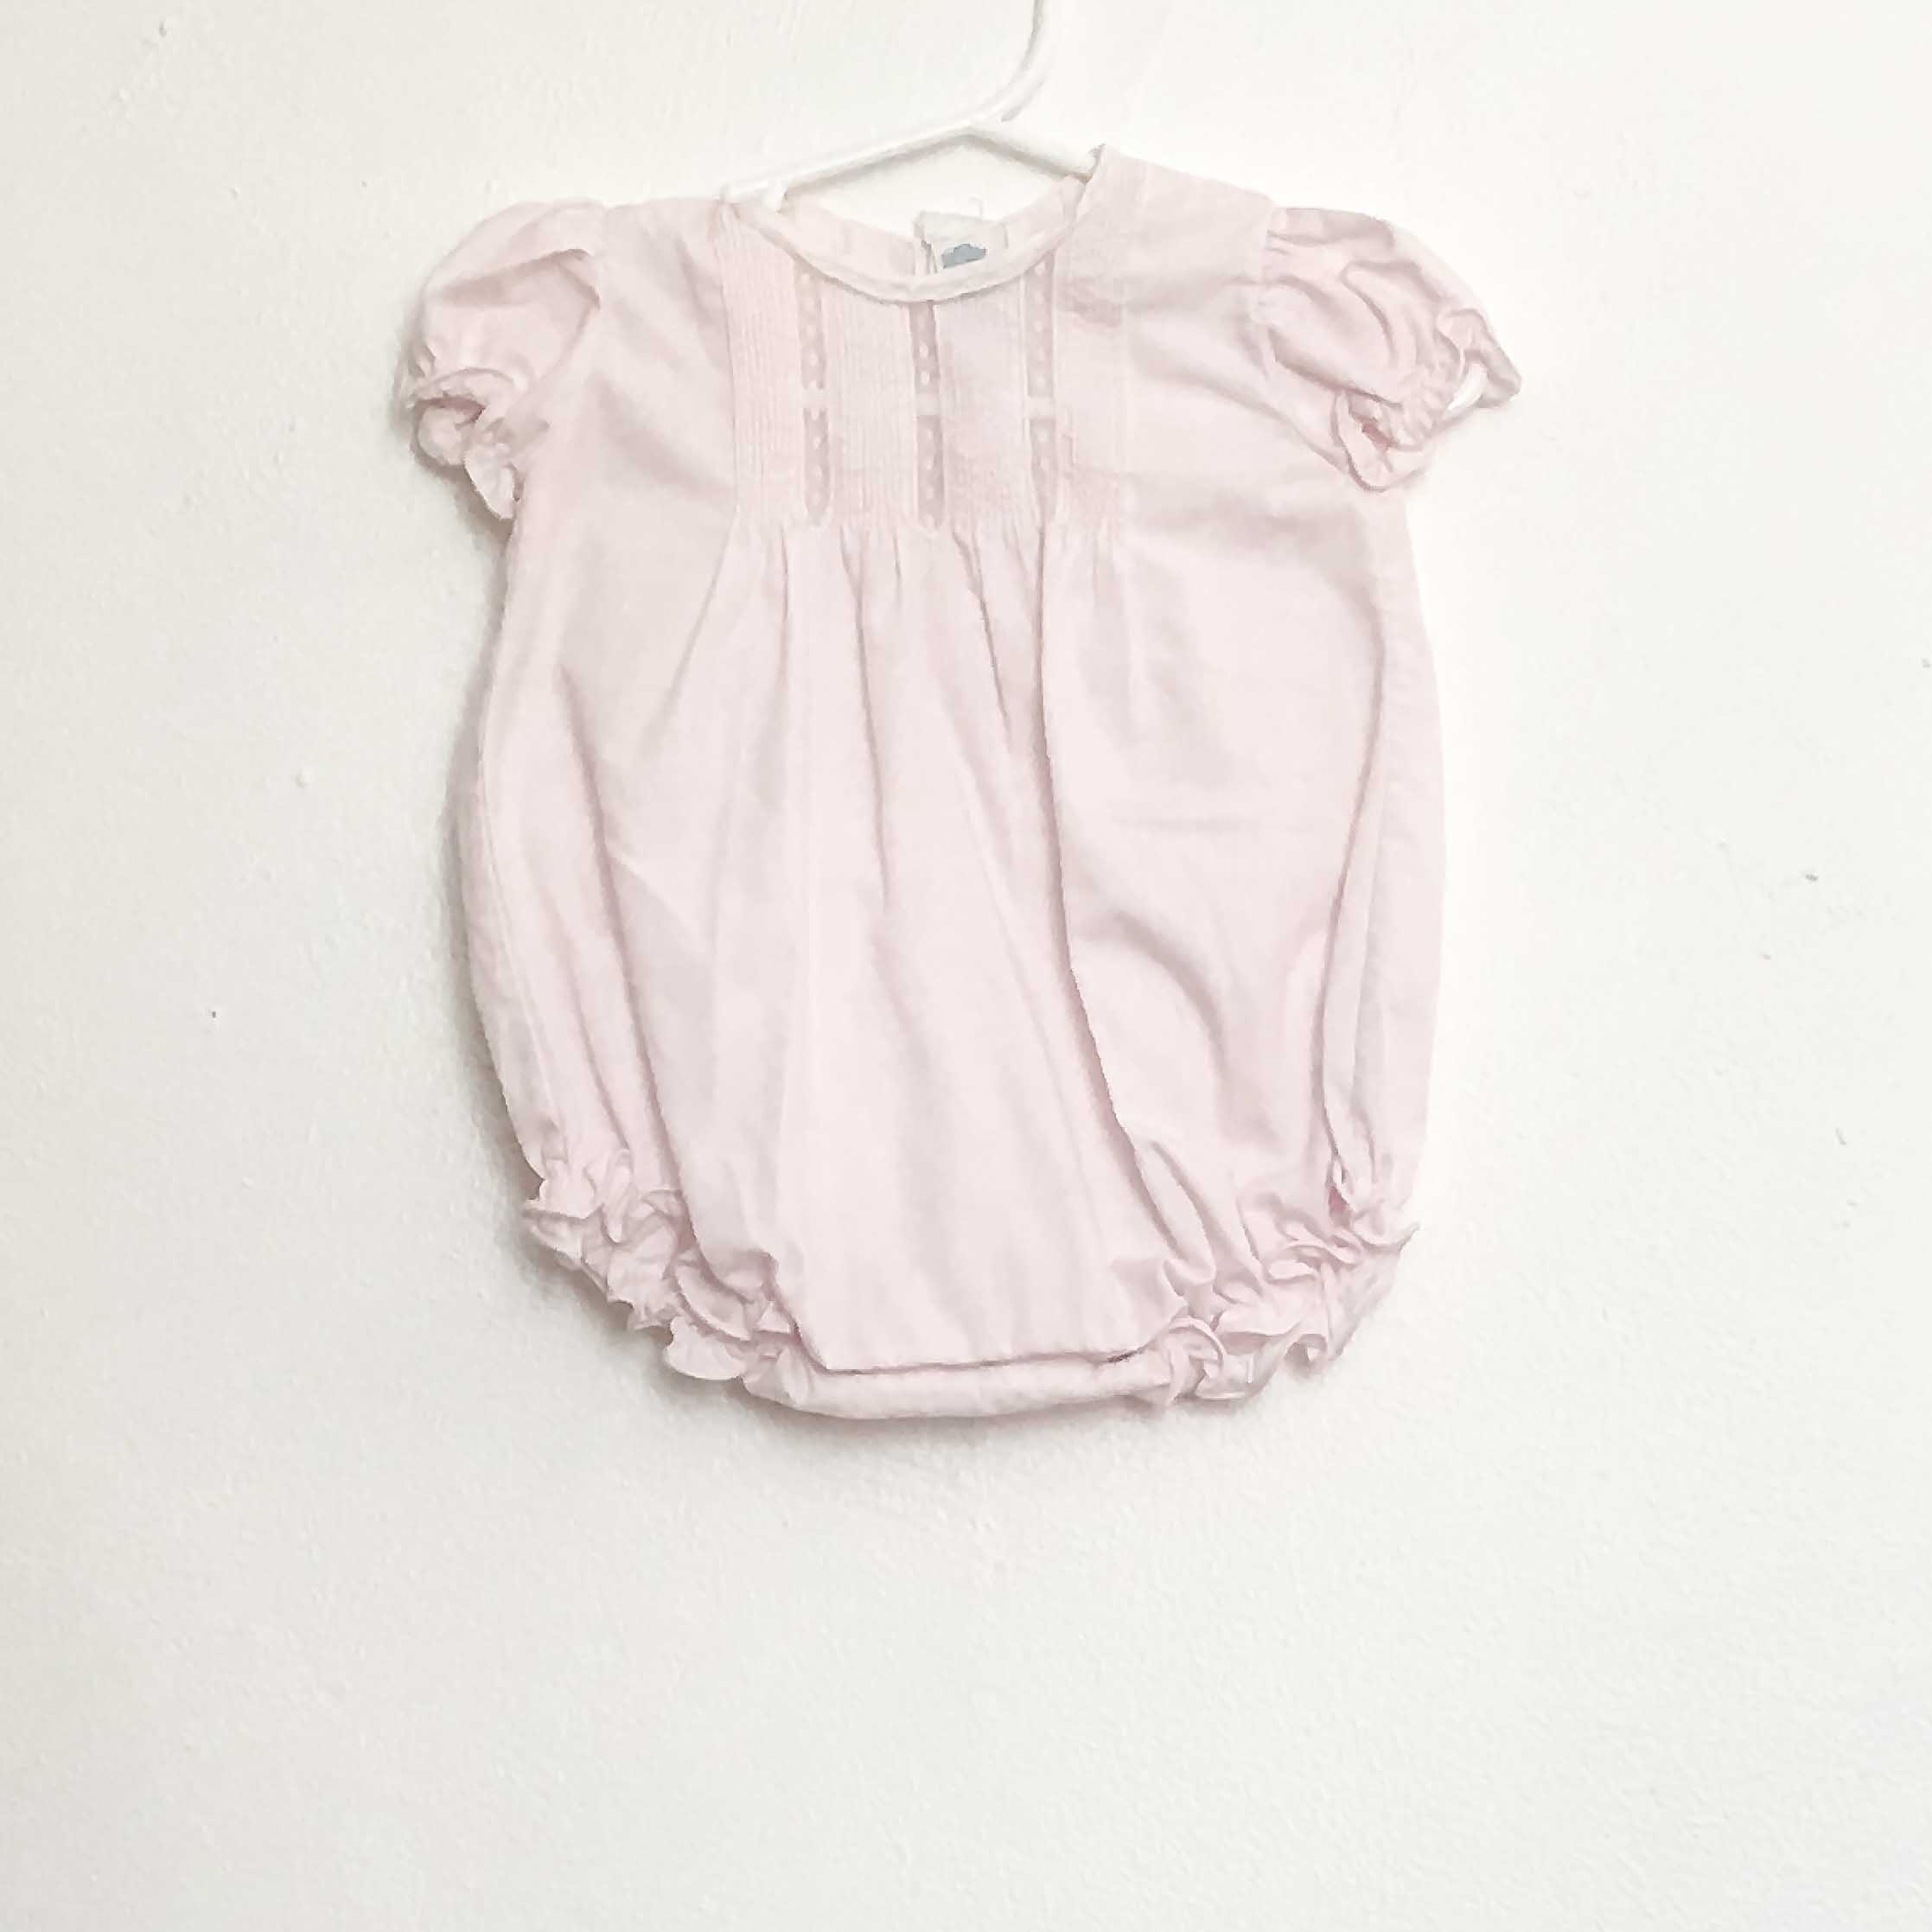 ORPCLOTHES-18.jpg